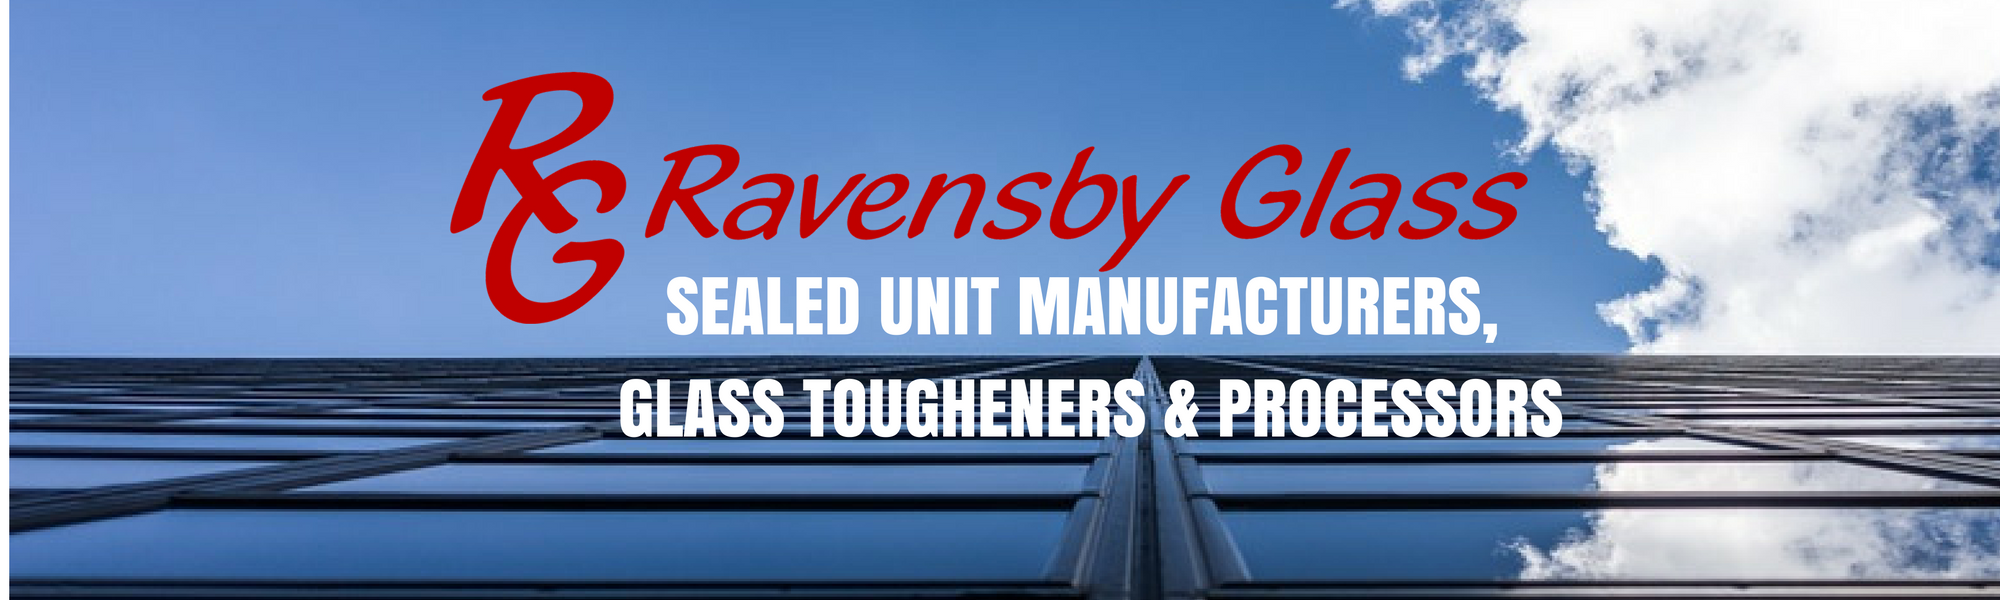 Ravensby Glass